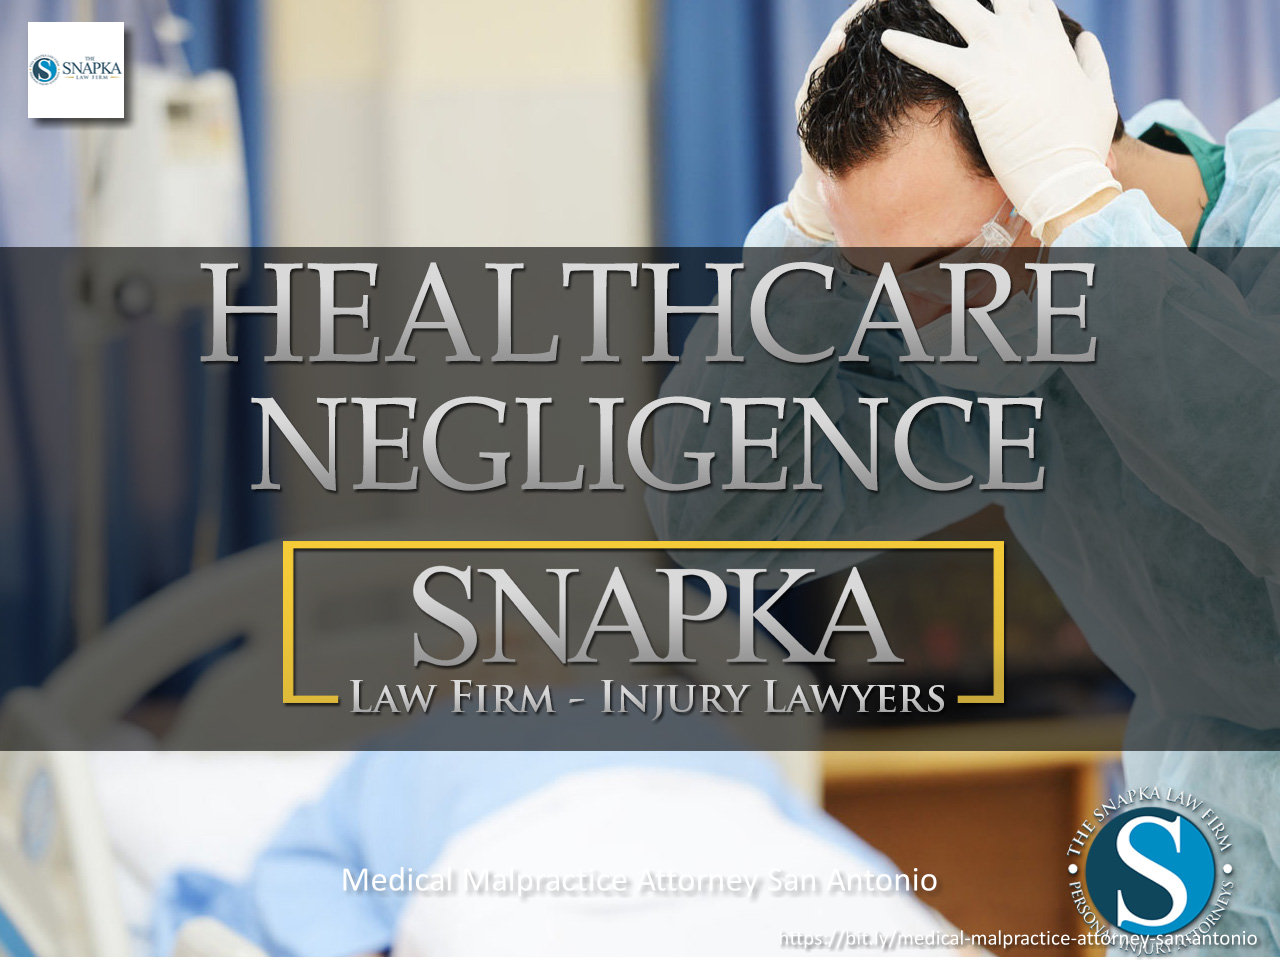 The Snapka Law Firm, Injury Lawyers Outlines What Sets Them Apart